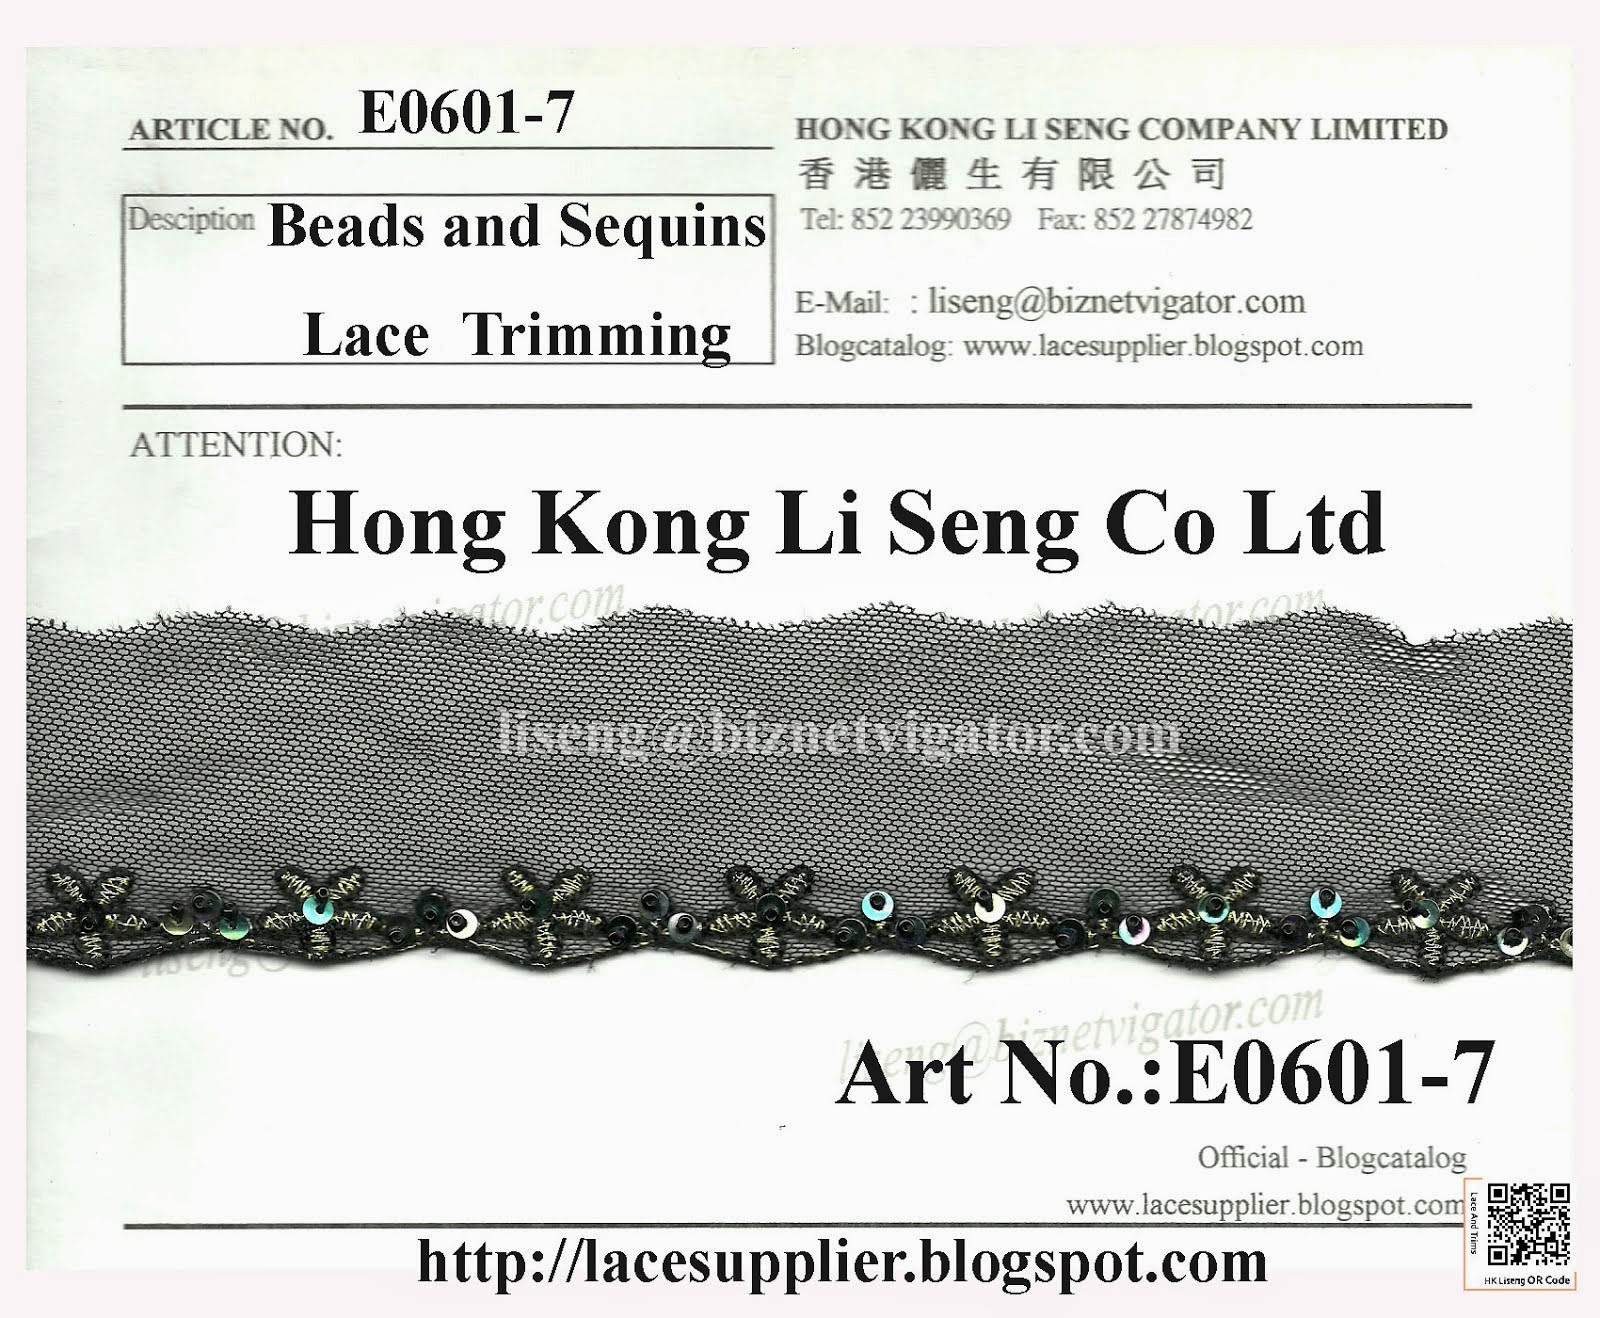 Beads and Sequins Lace Trimming Manufacturer - Hong Kong Li Seng Co Ltd